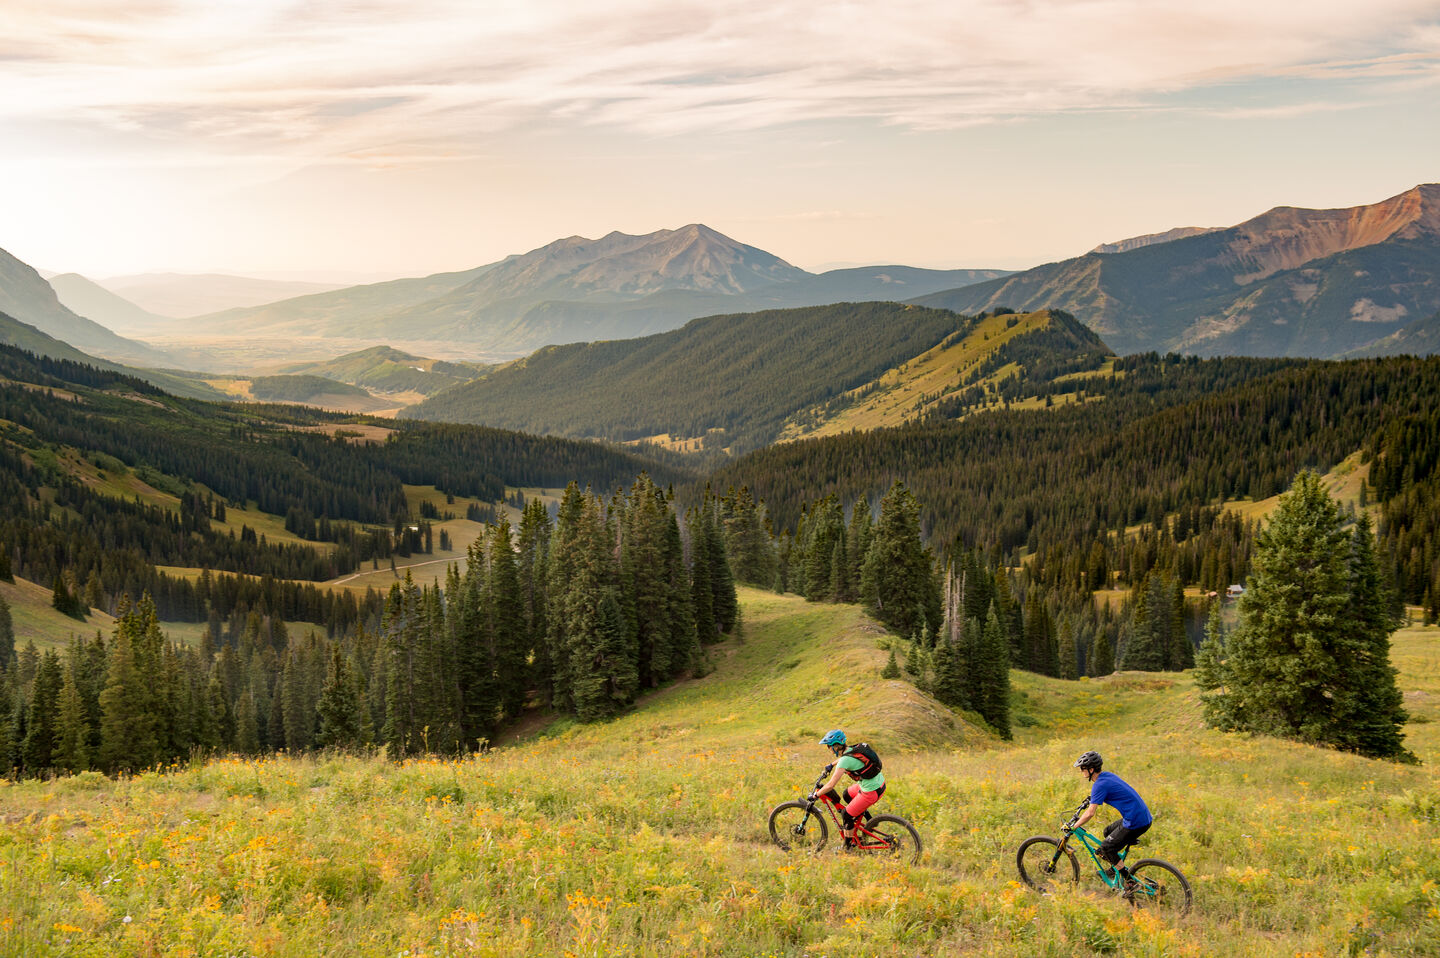 Two mountain bikers riding through meadow just before sunset